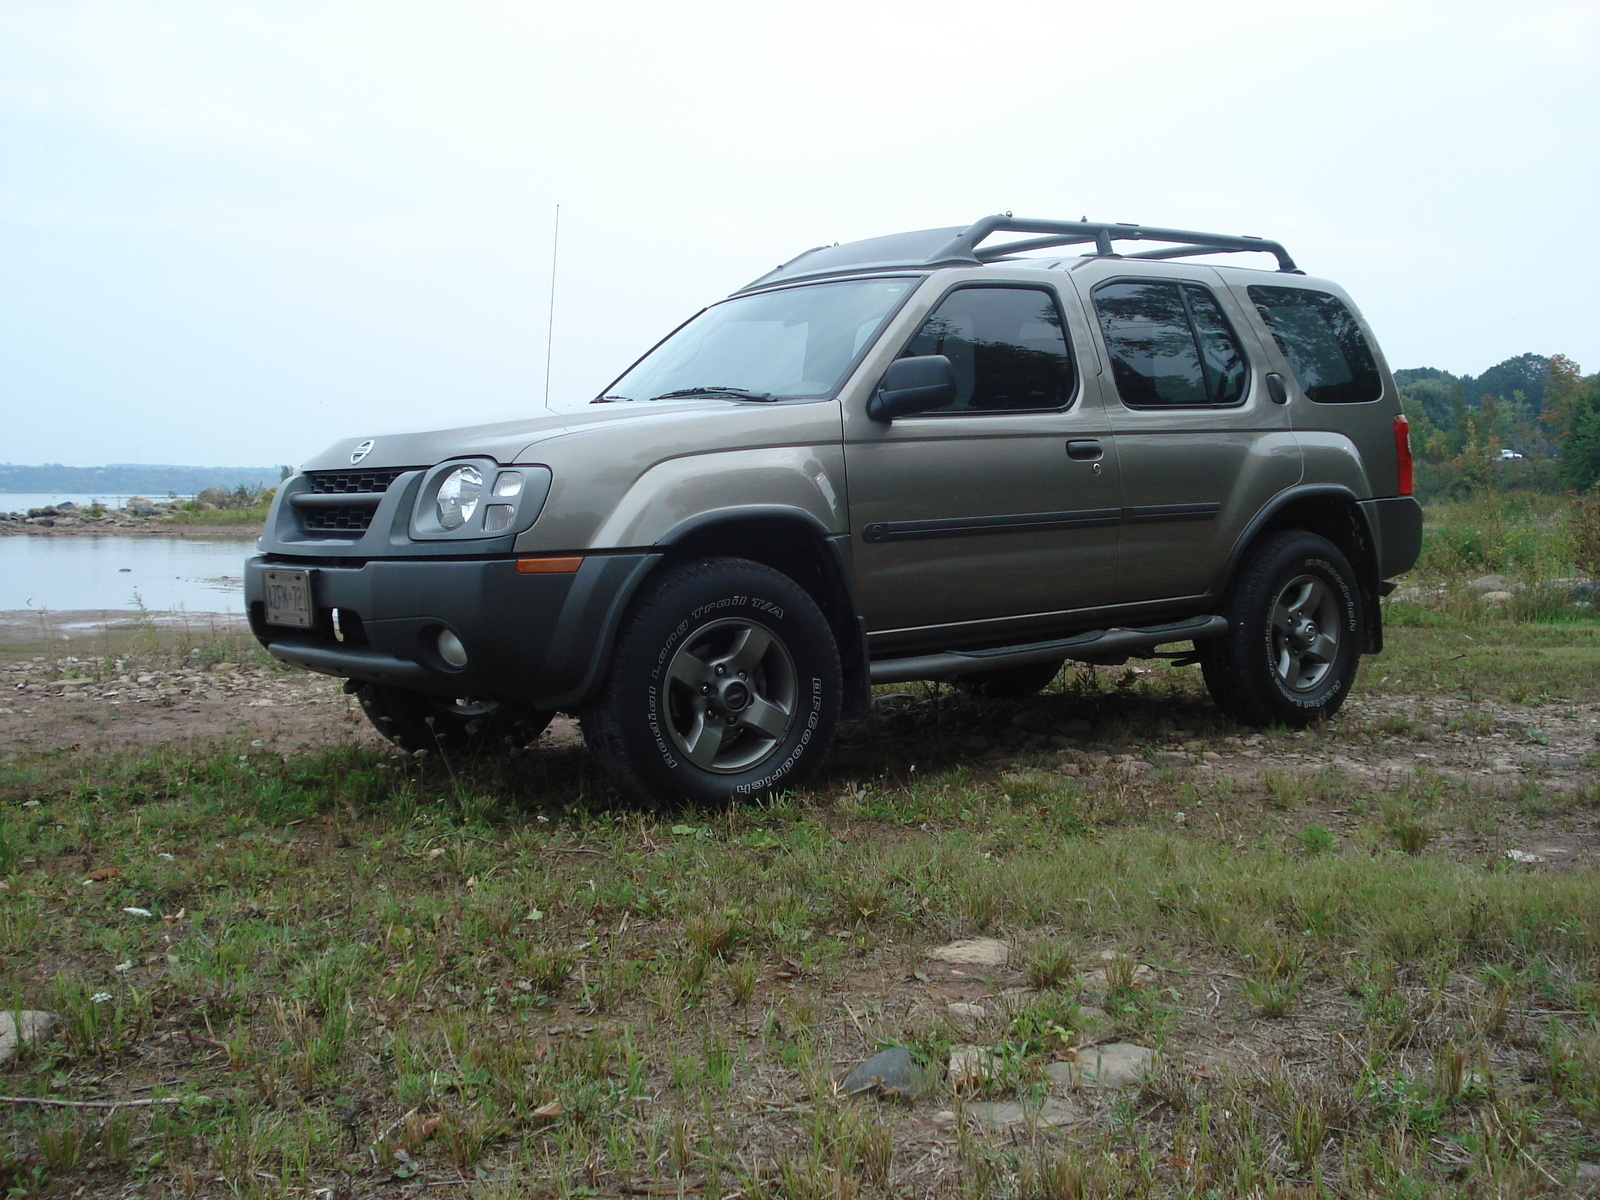 2003 Land Rover Discovery User Reviews CarGurus